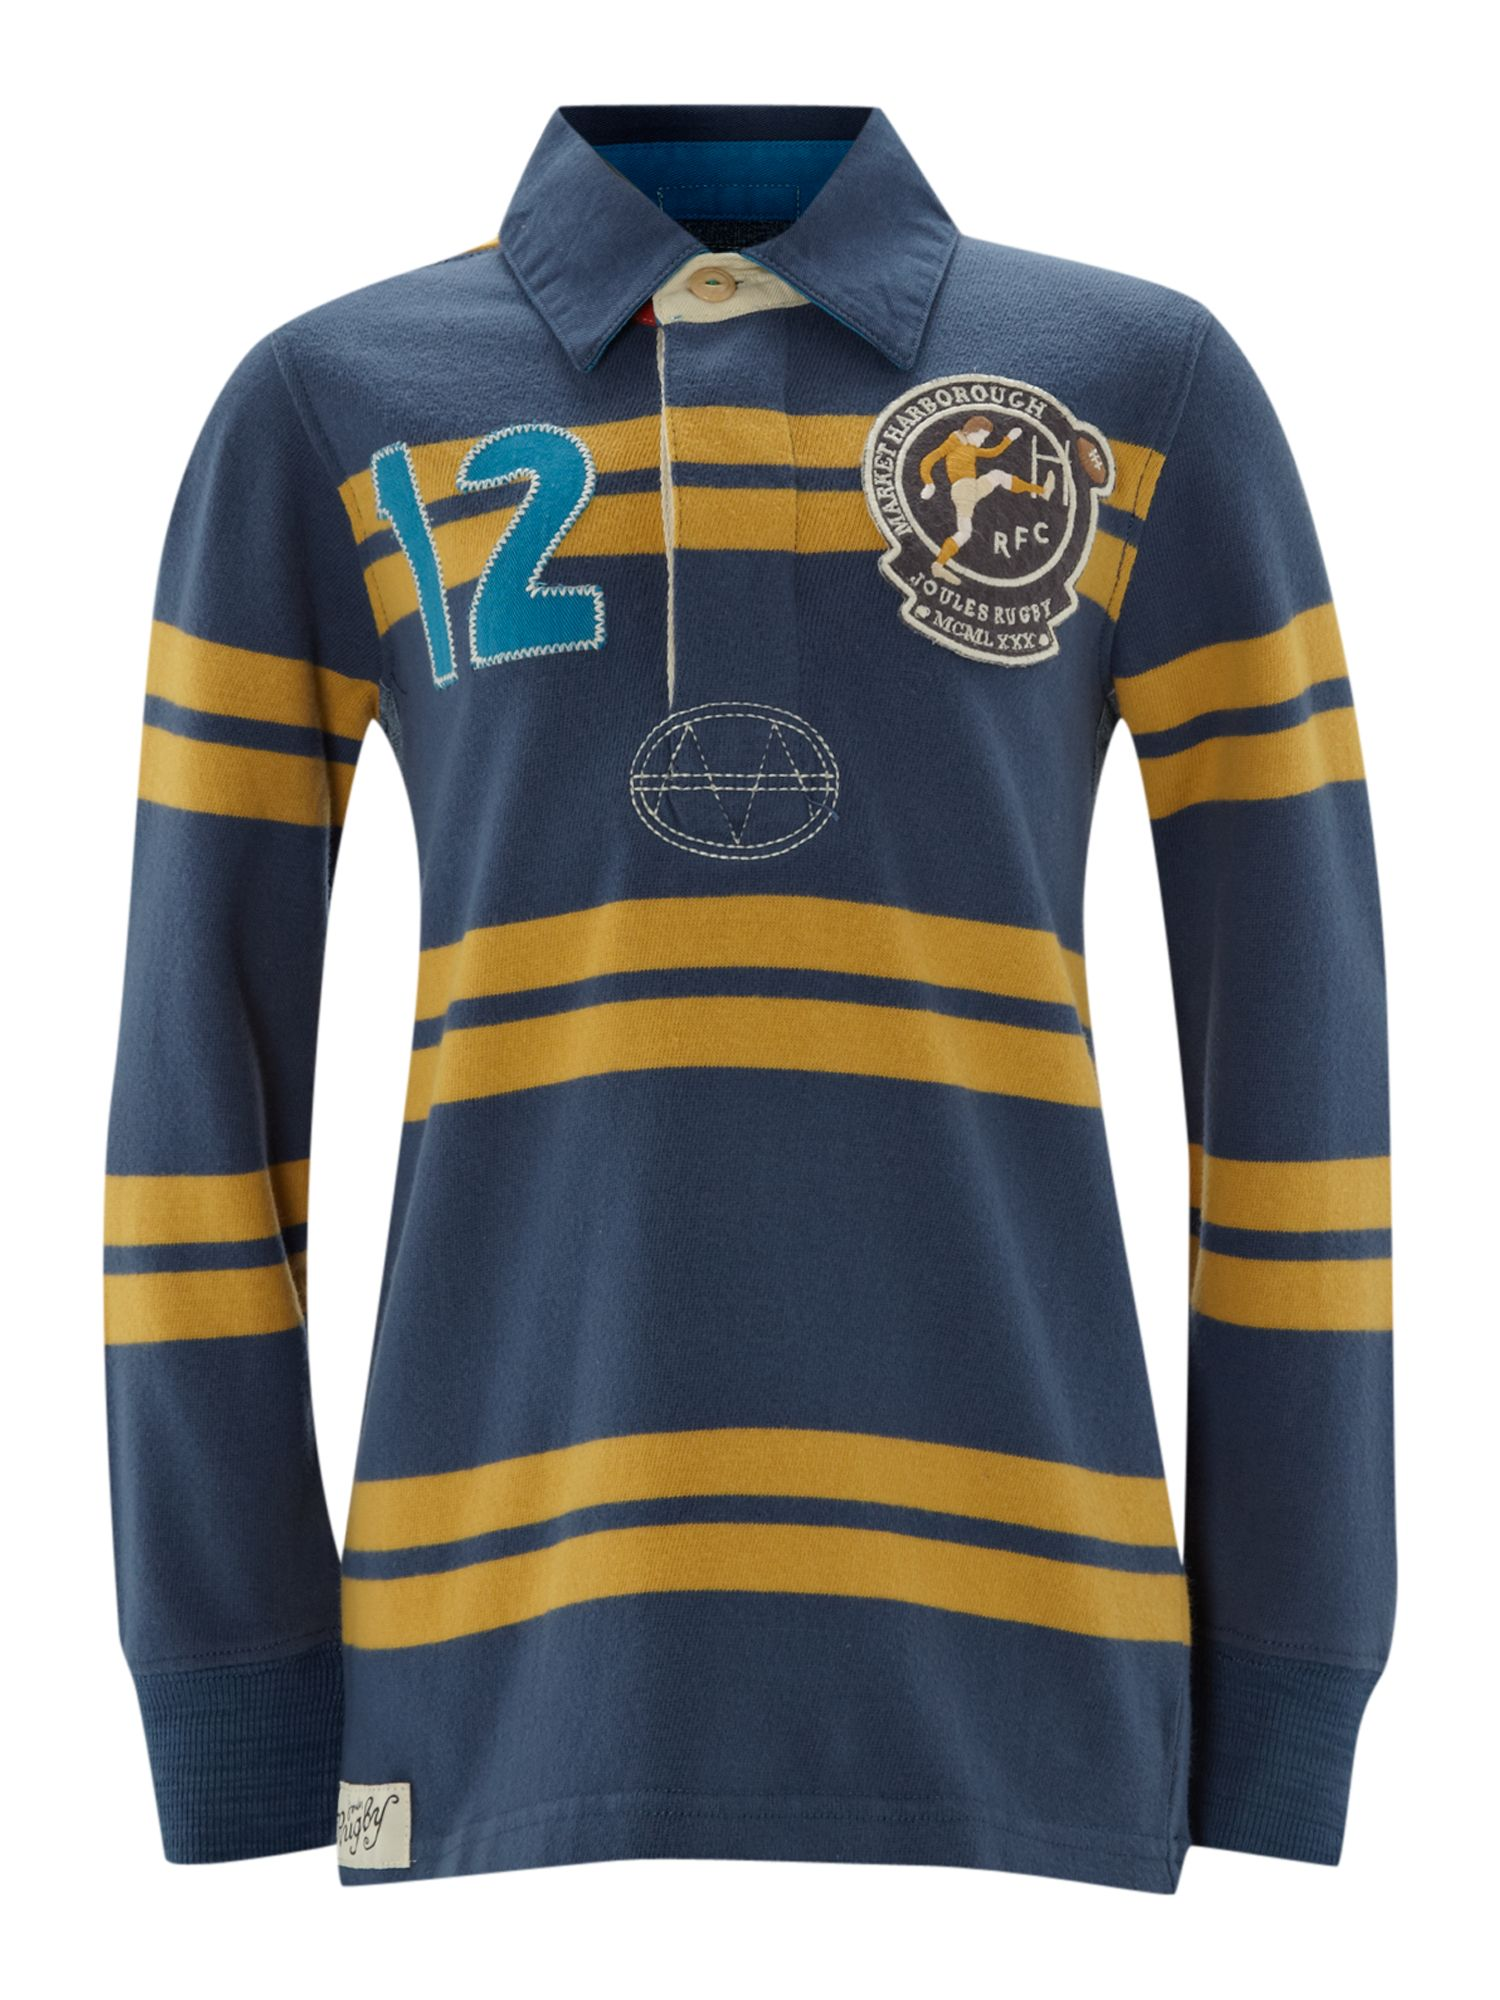 Boy`s lockhurst rugby shirt